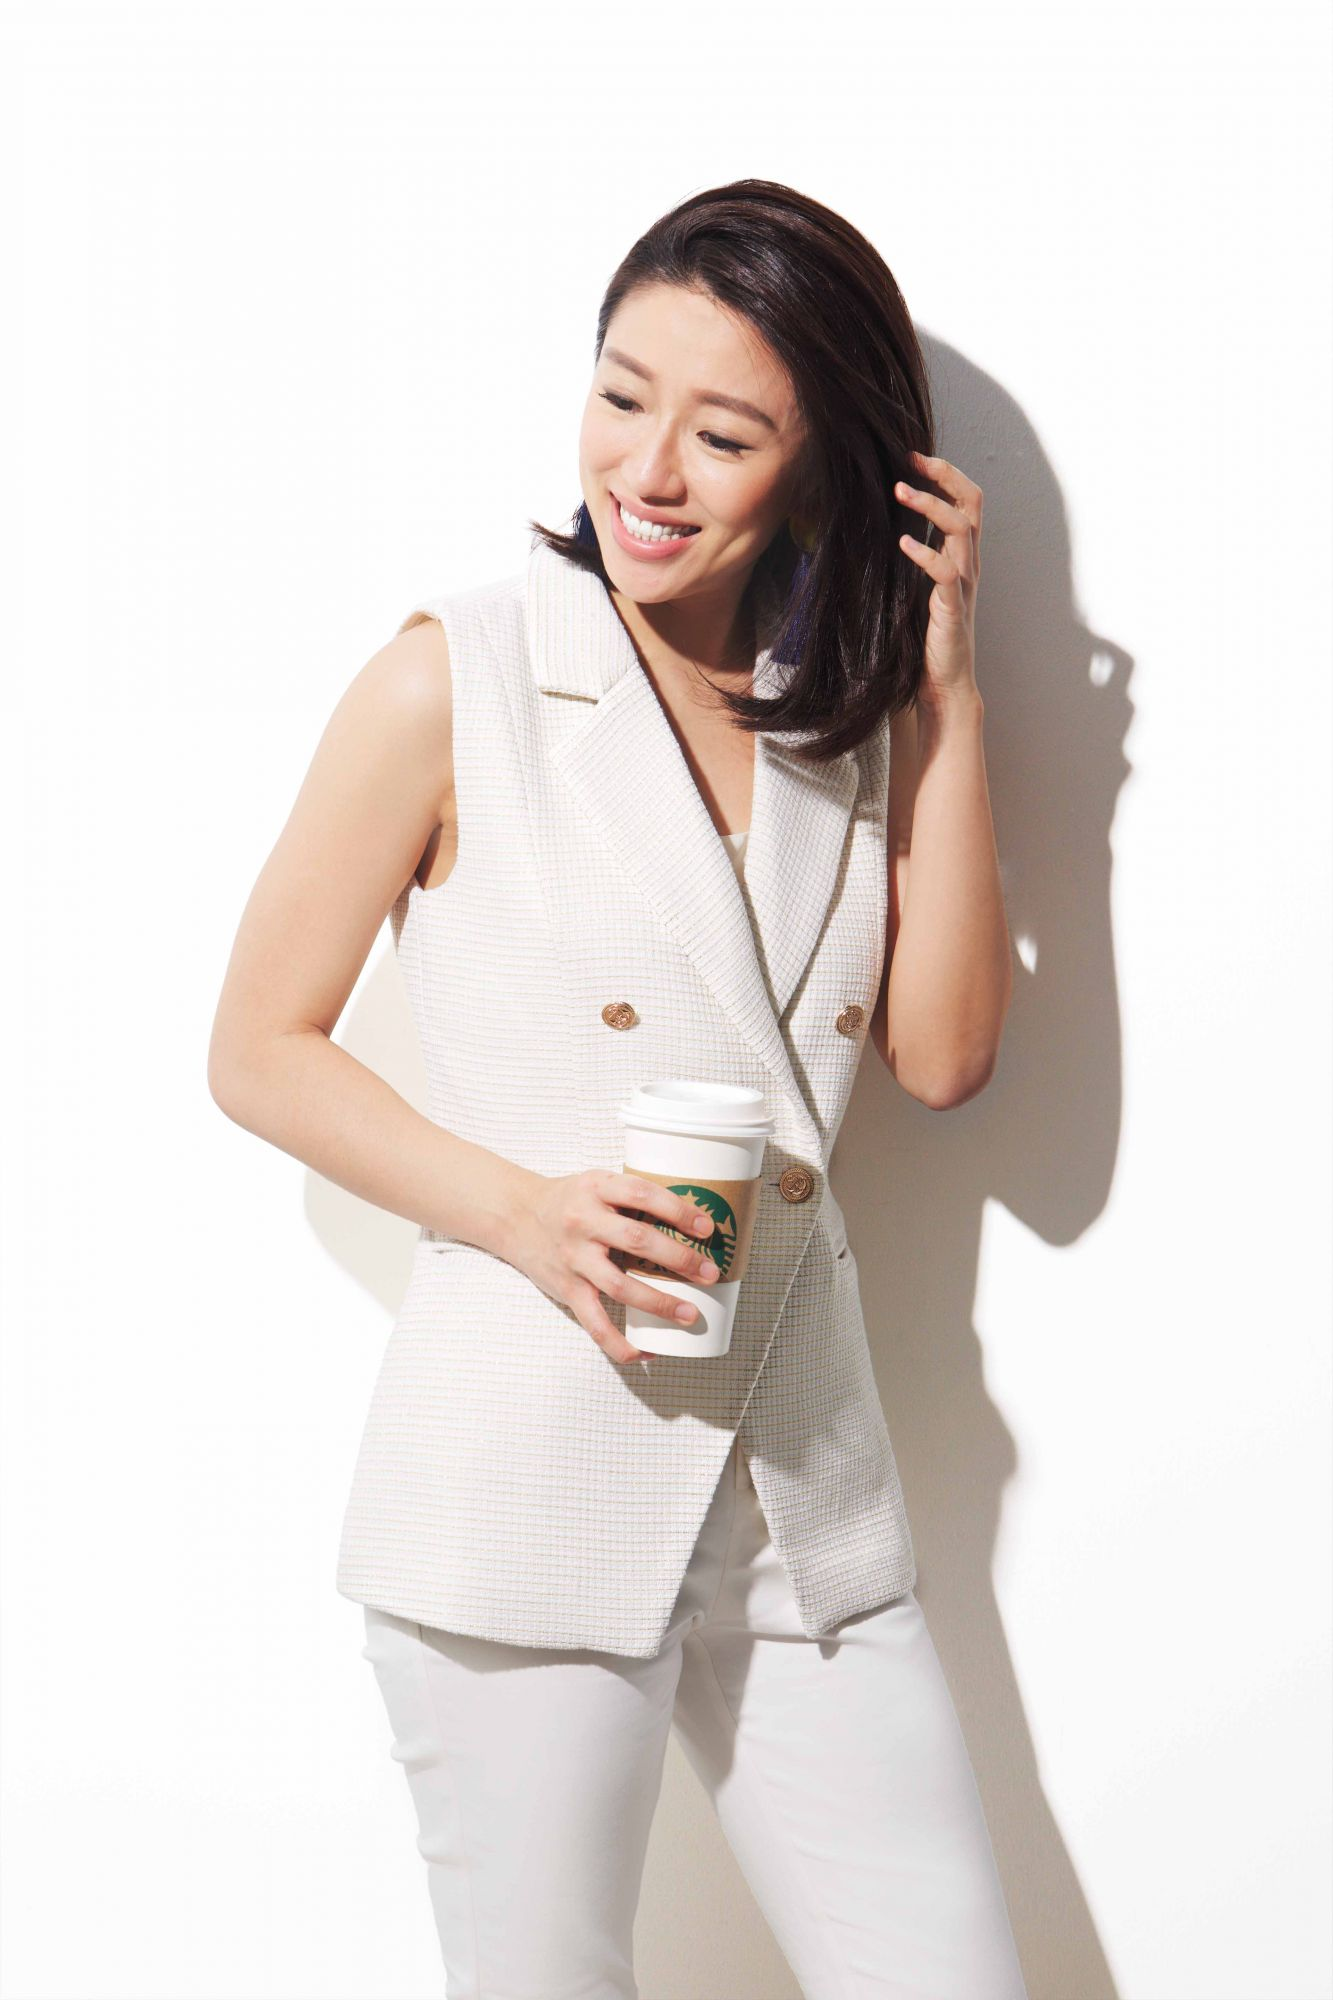 A Drink With... Rachel Lim, Co-Founder Of Love, Bonito